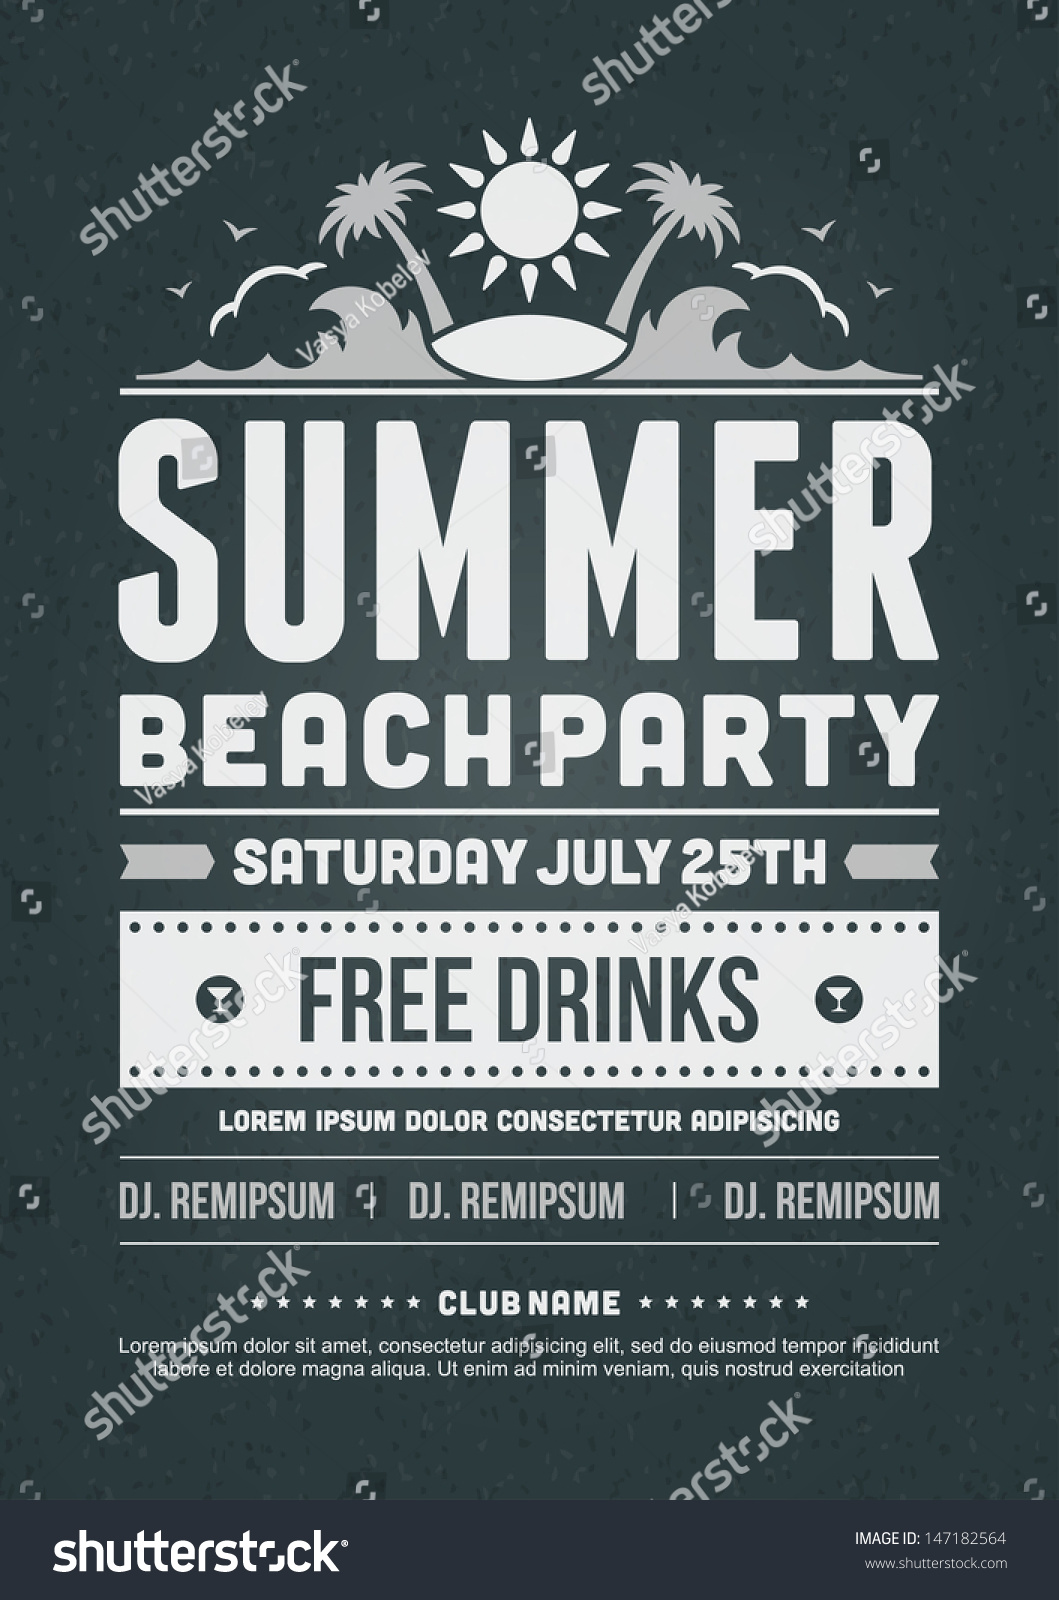 Summer Party Invitation Template for adorable invitations sample